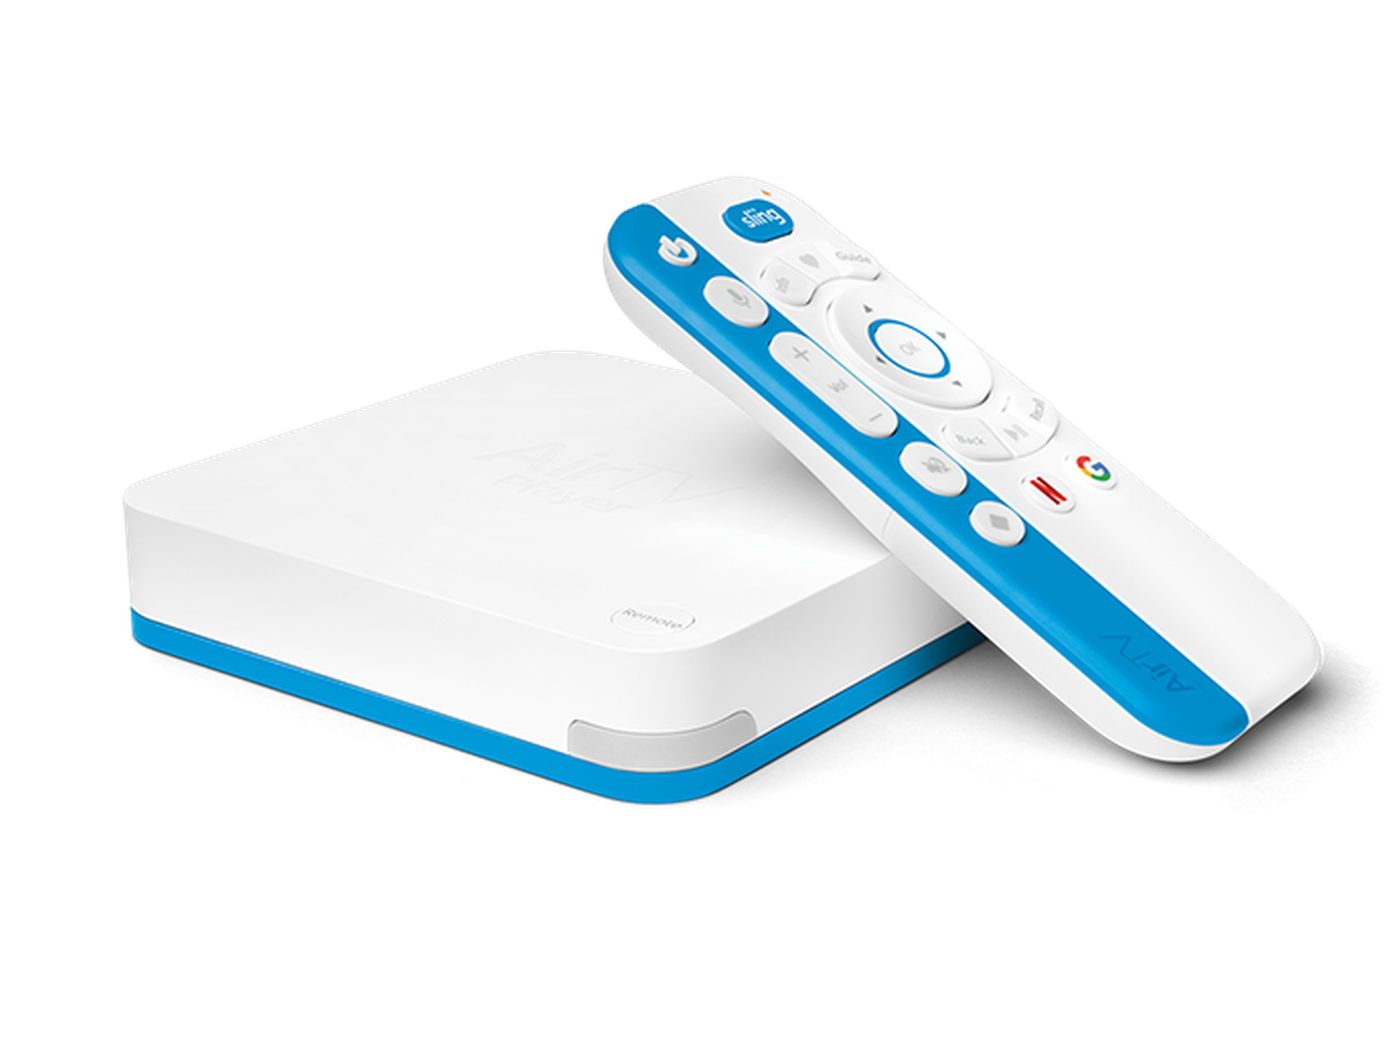 Sling TV — a pay TV company — encourages people to stop paying for TV with its new AirTV box